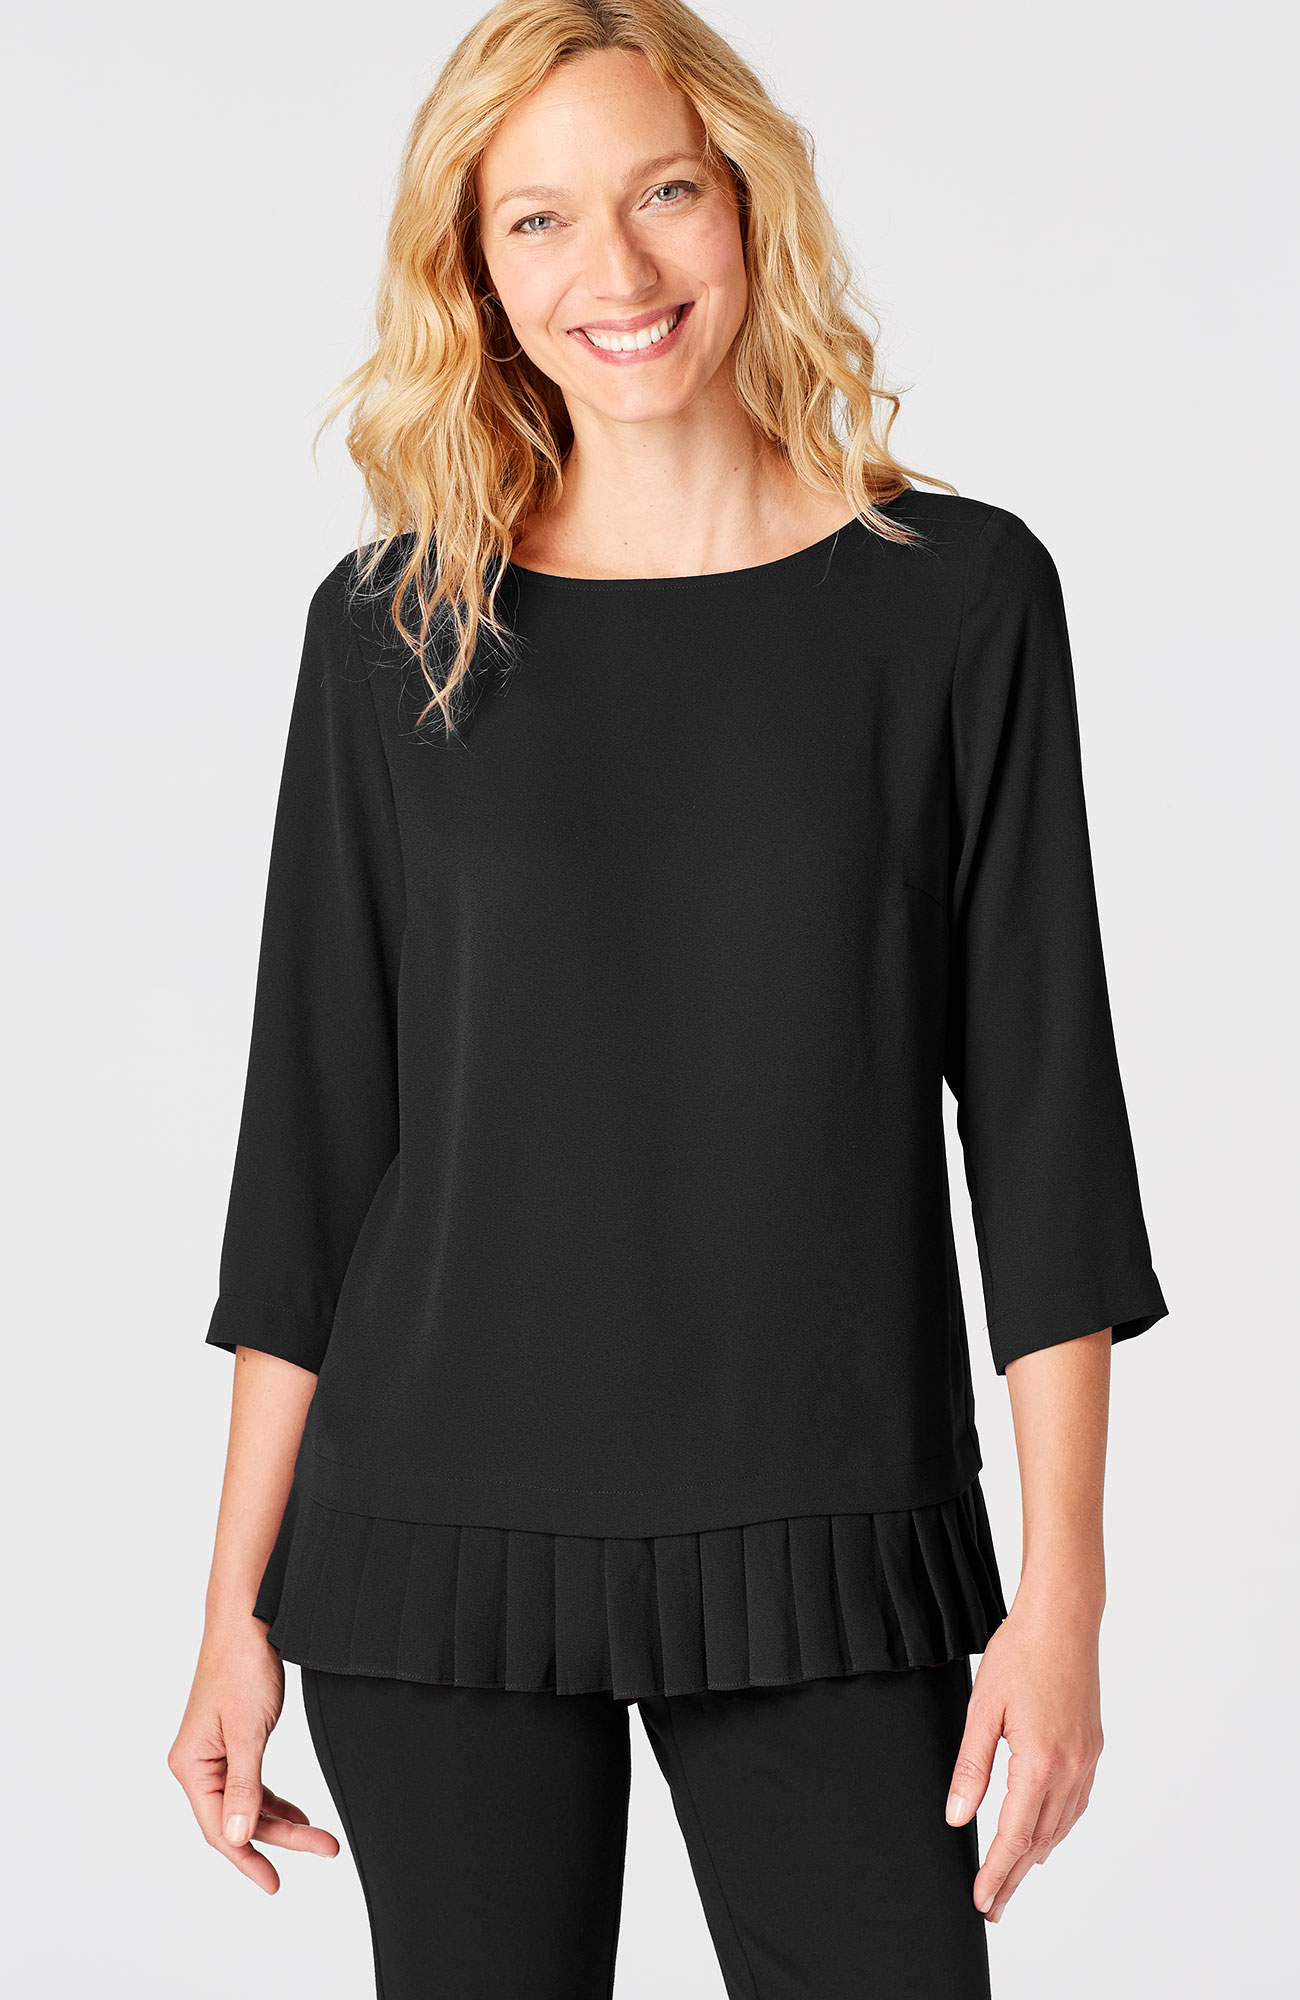 pleated-border top